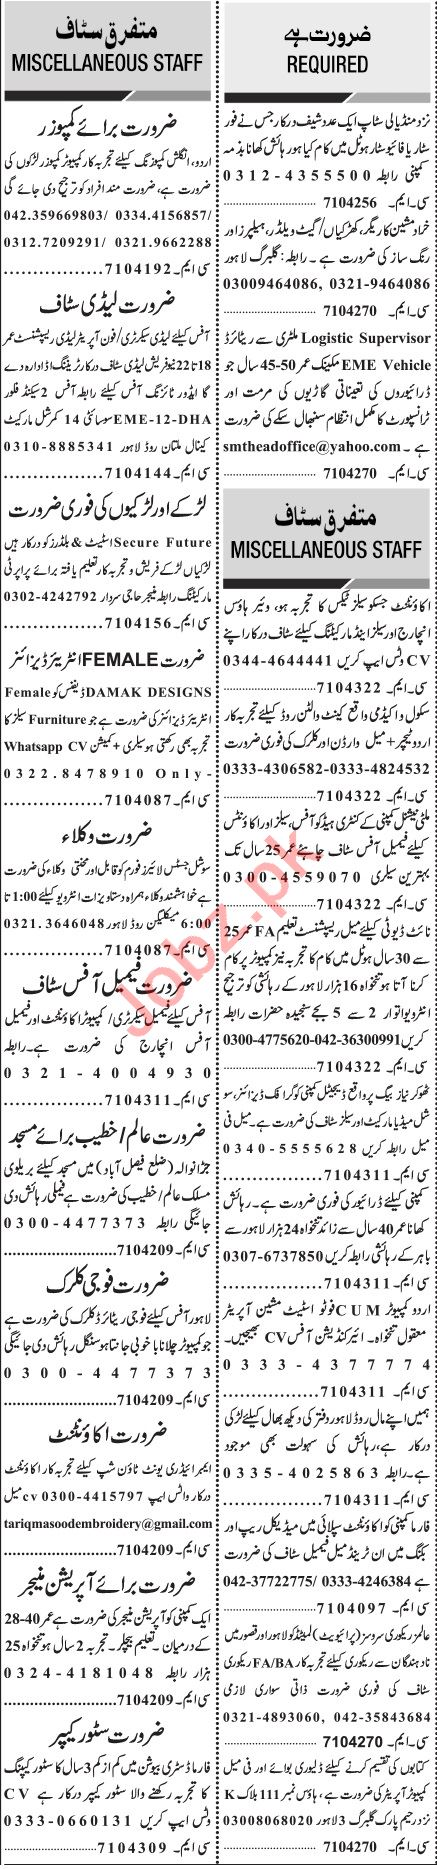 Jang Sunday Classified Ads 19 Sep 2021 for General Staff